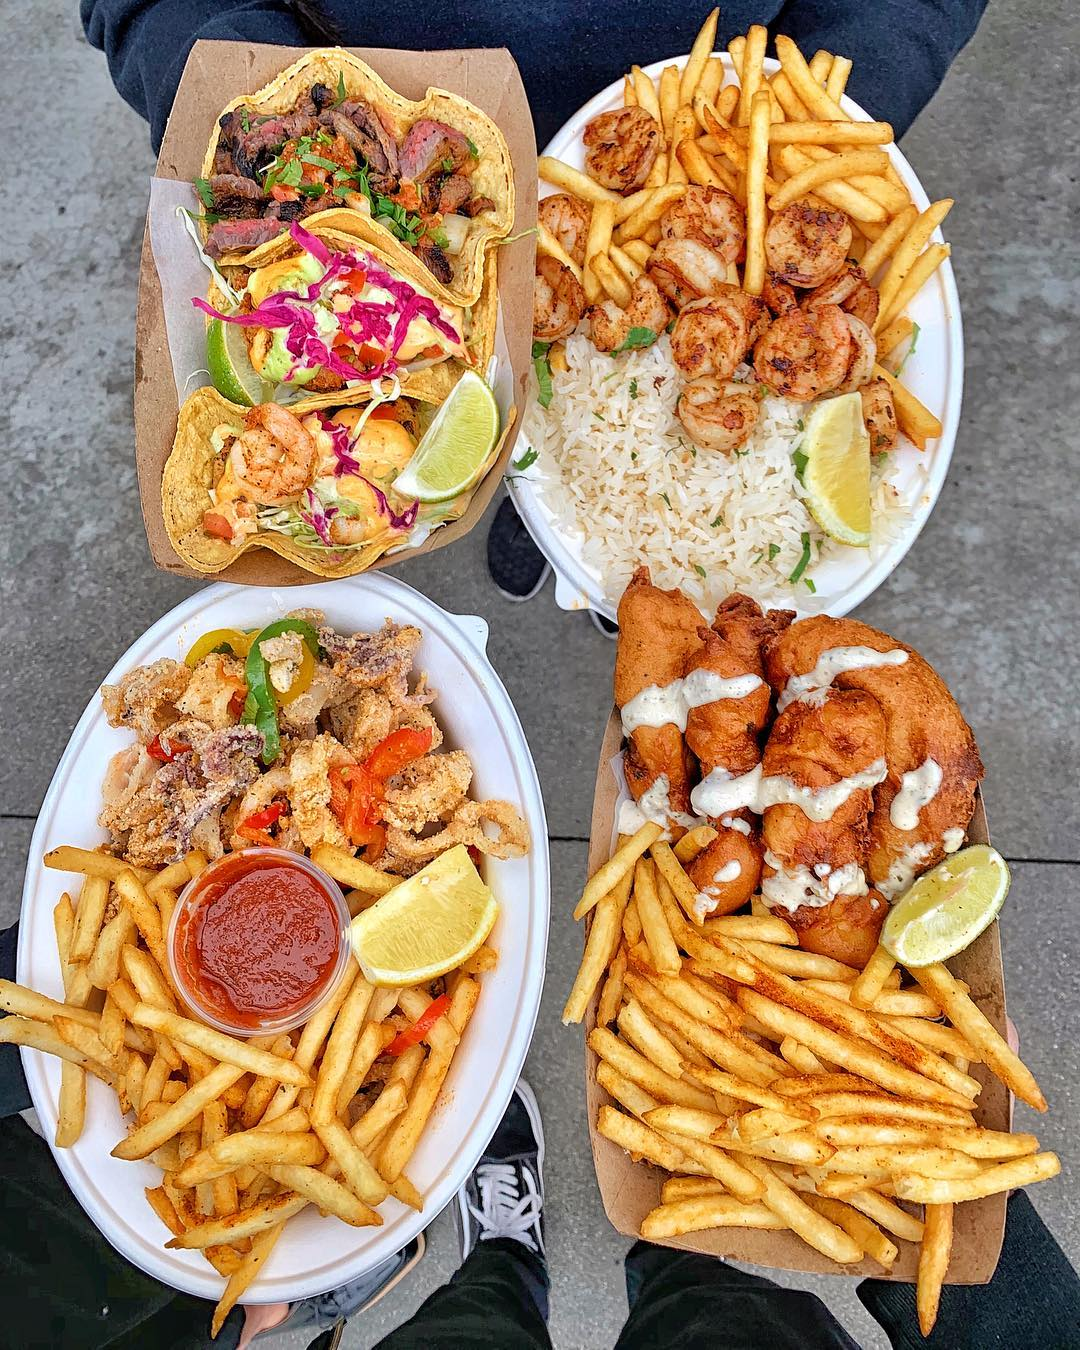 When your meal prepping consists of FISH TACOS, FISH & CHIPS and TACOS. : (Steak/Fish/Shrimp Tacos, Shrimp/Fries Plate, Calmari and Fish & Chips).⠀ :  ⠀ ——————————————— ⠀                              ...